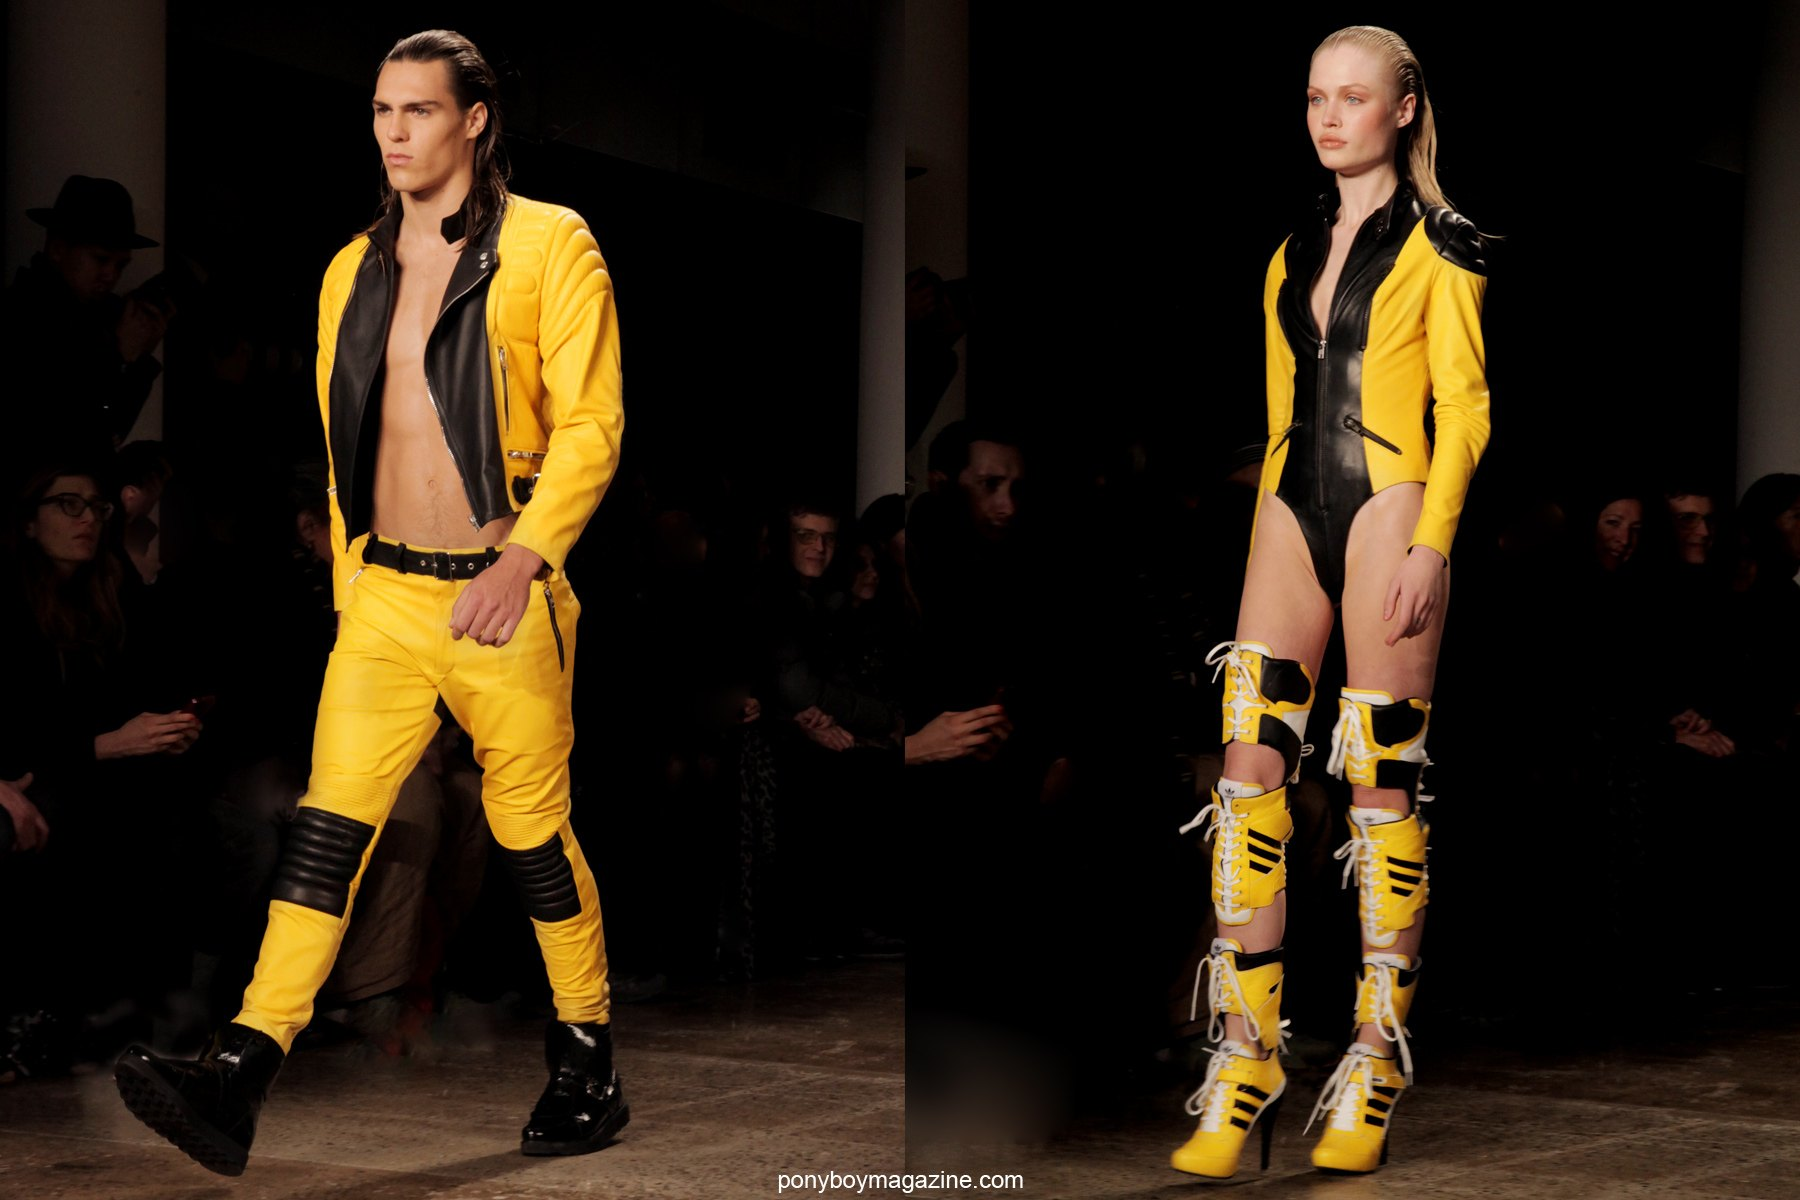 80's inspired fashions on models at Jeremy Scott's A/W 2014 runway show. Photographed by Alexander Thompson for Ponyboy Magazine in New York City.